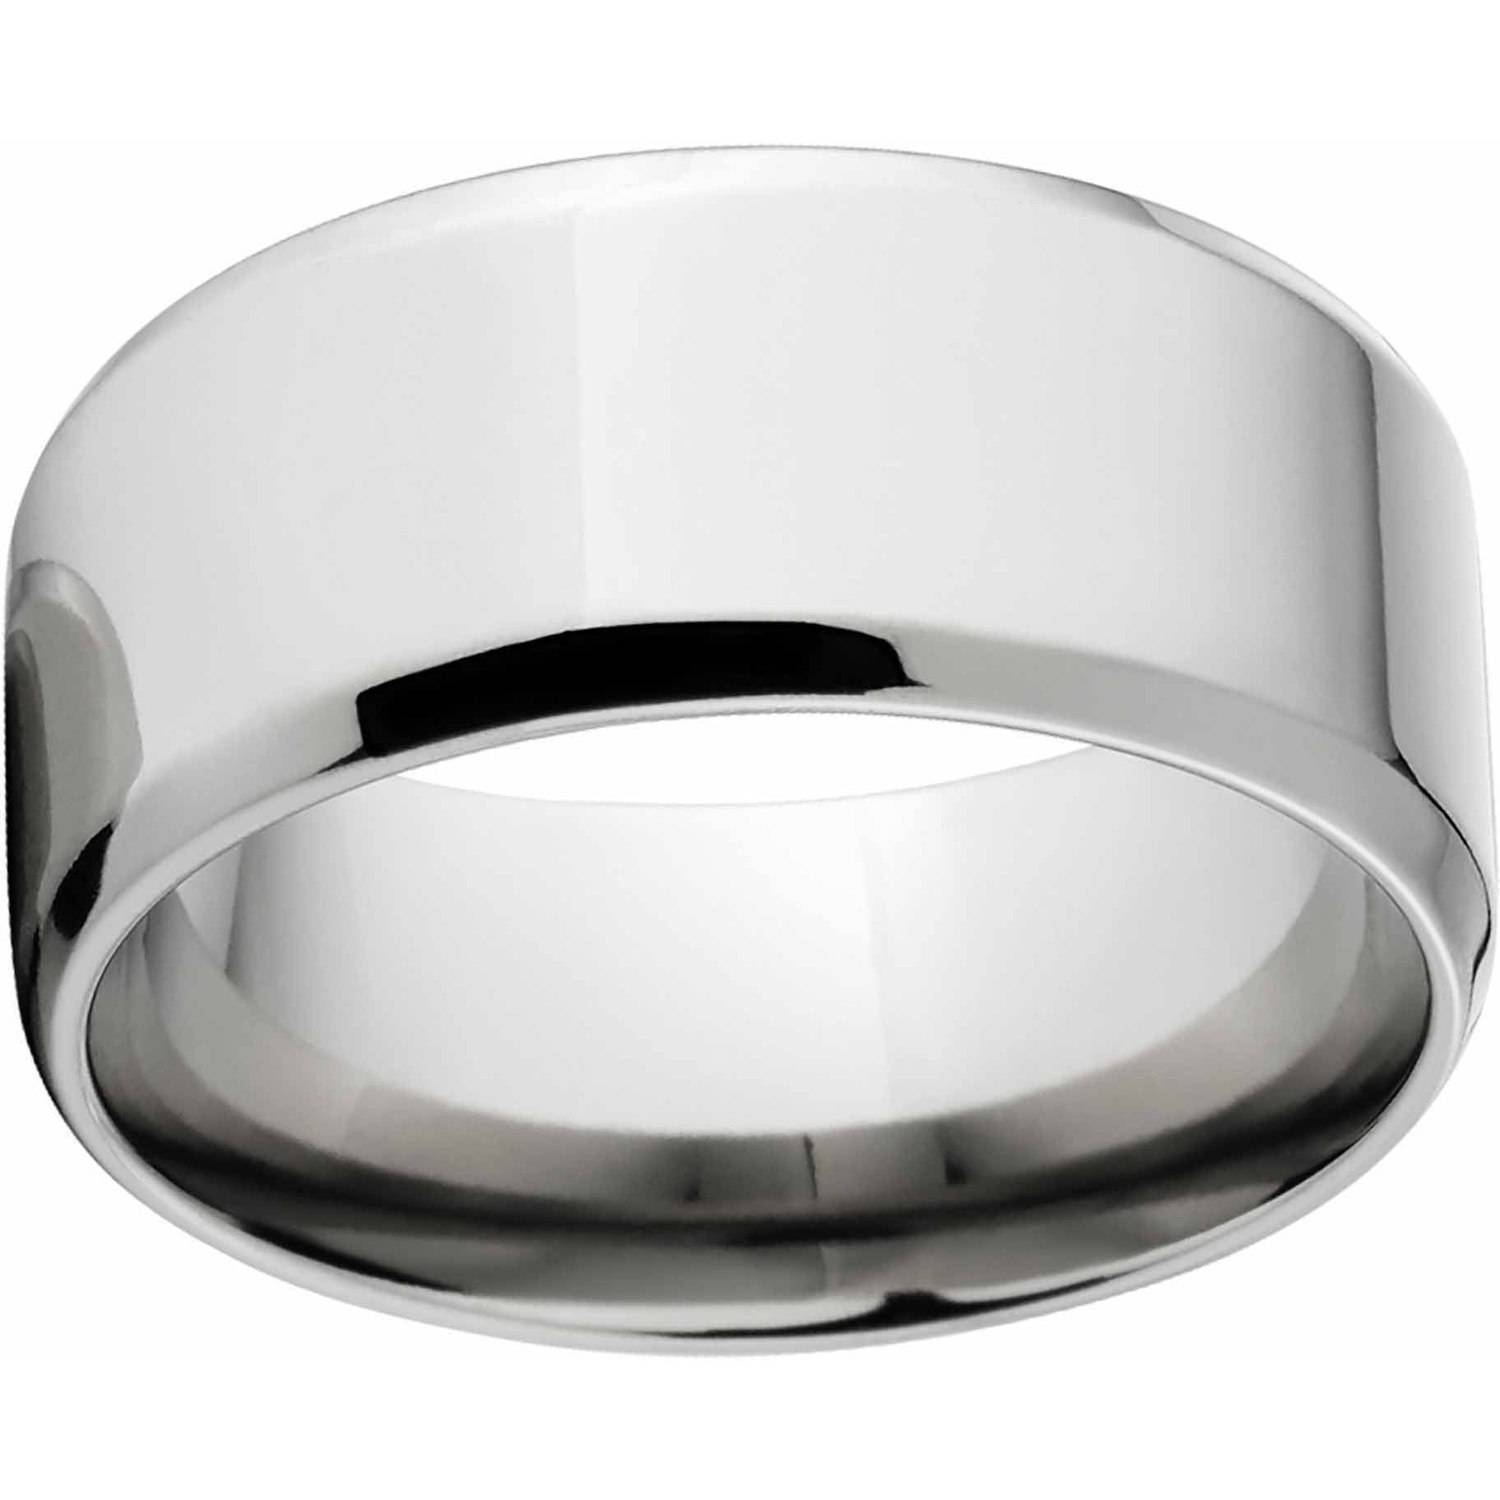 Polished 10Mm Titanium Wedding Band With Comfort Fit Design With Regard To Walmart Men's Wedding Bands (View 15 of 15)